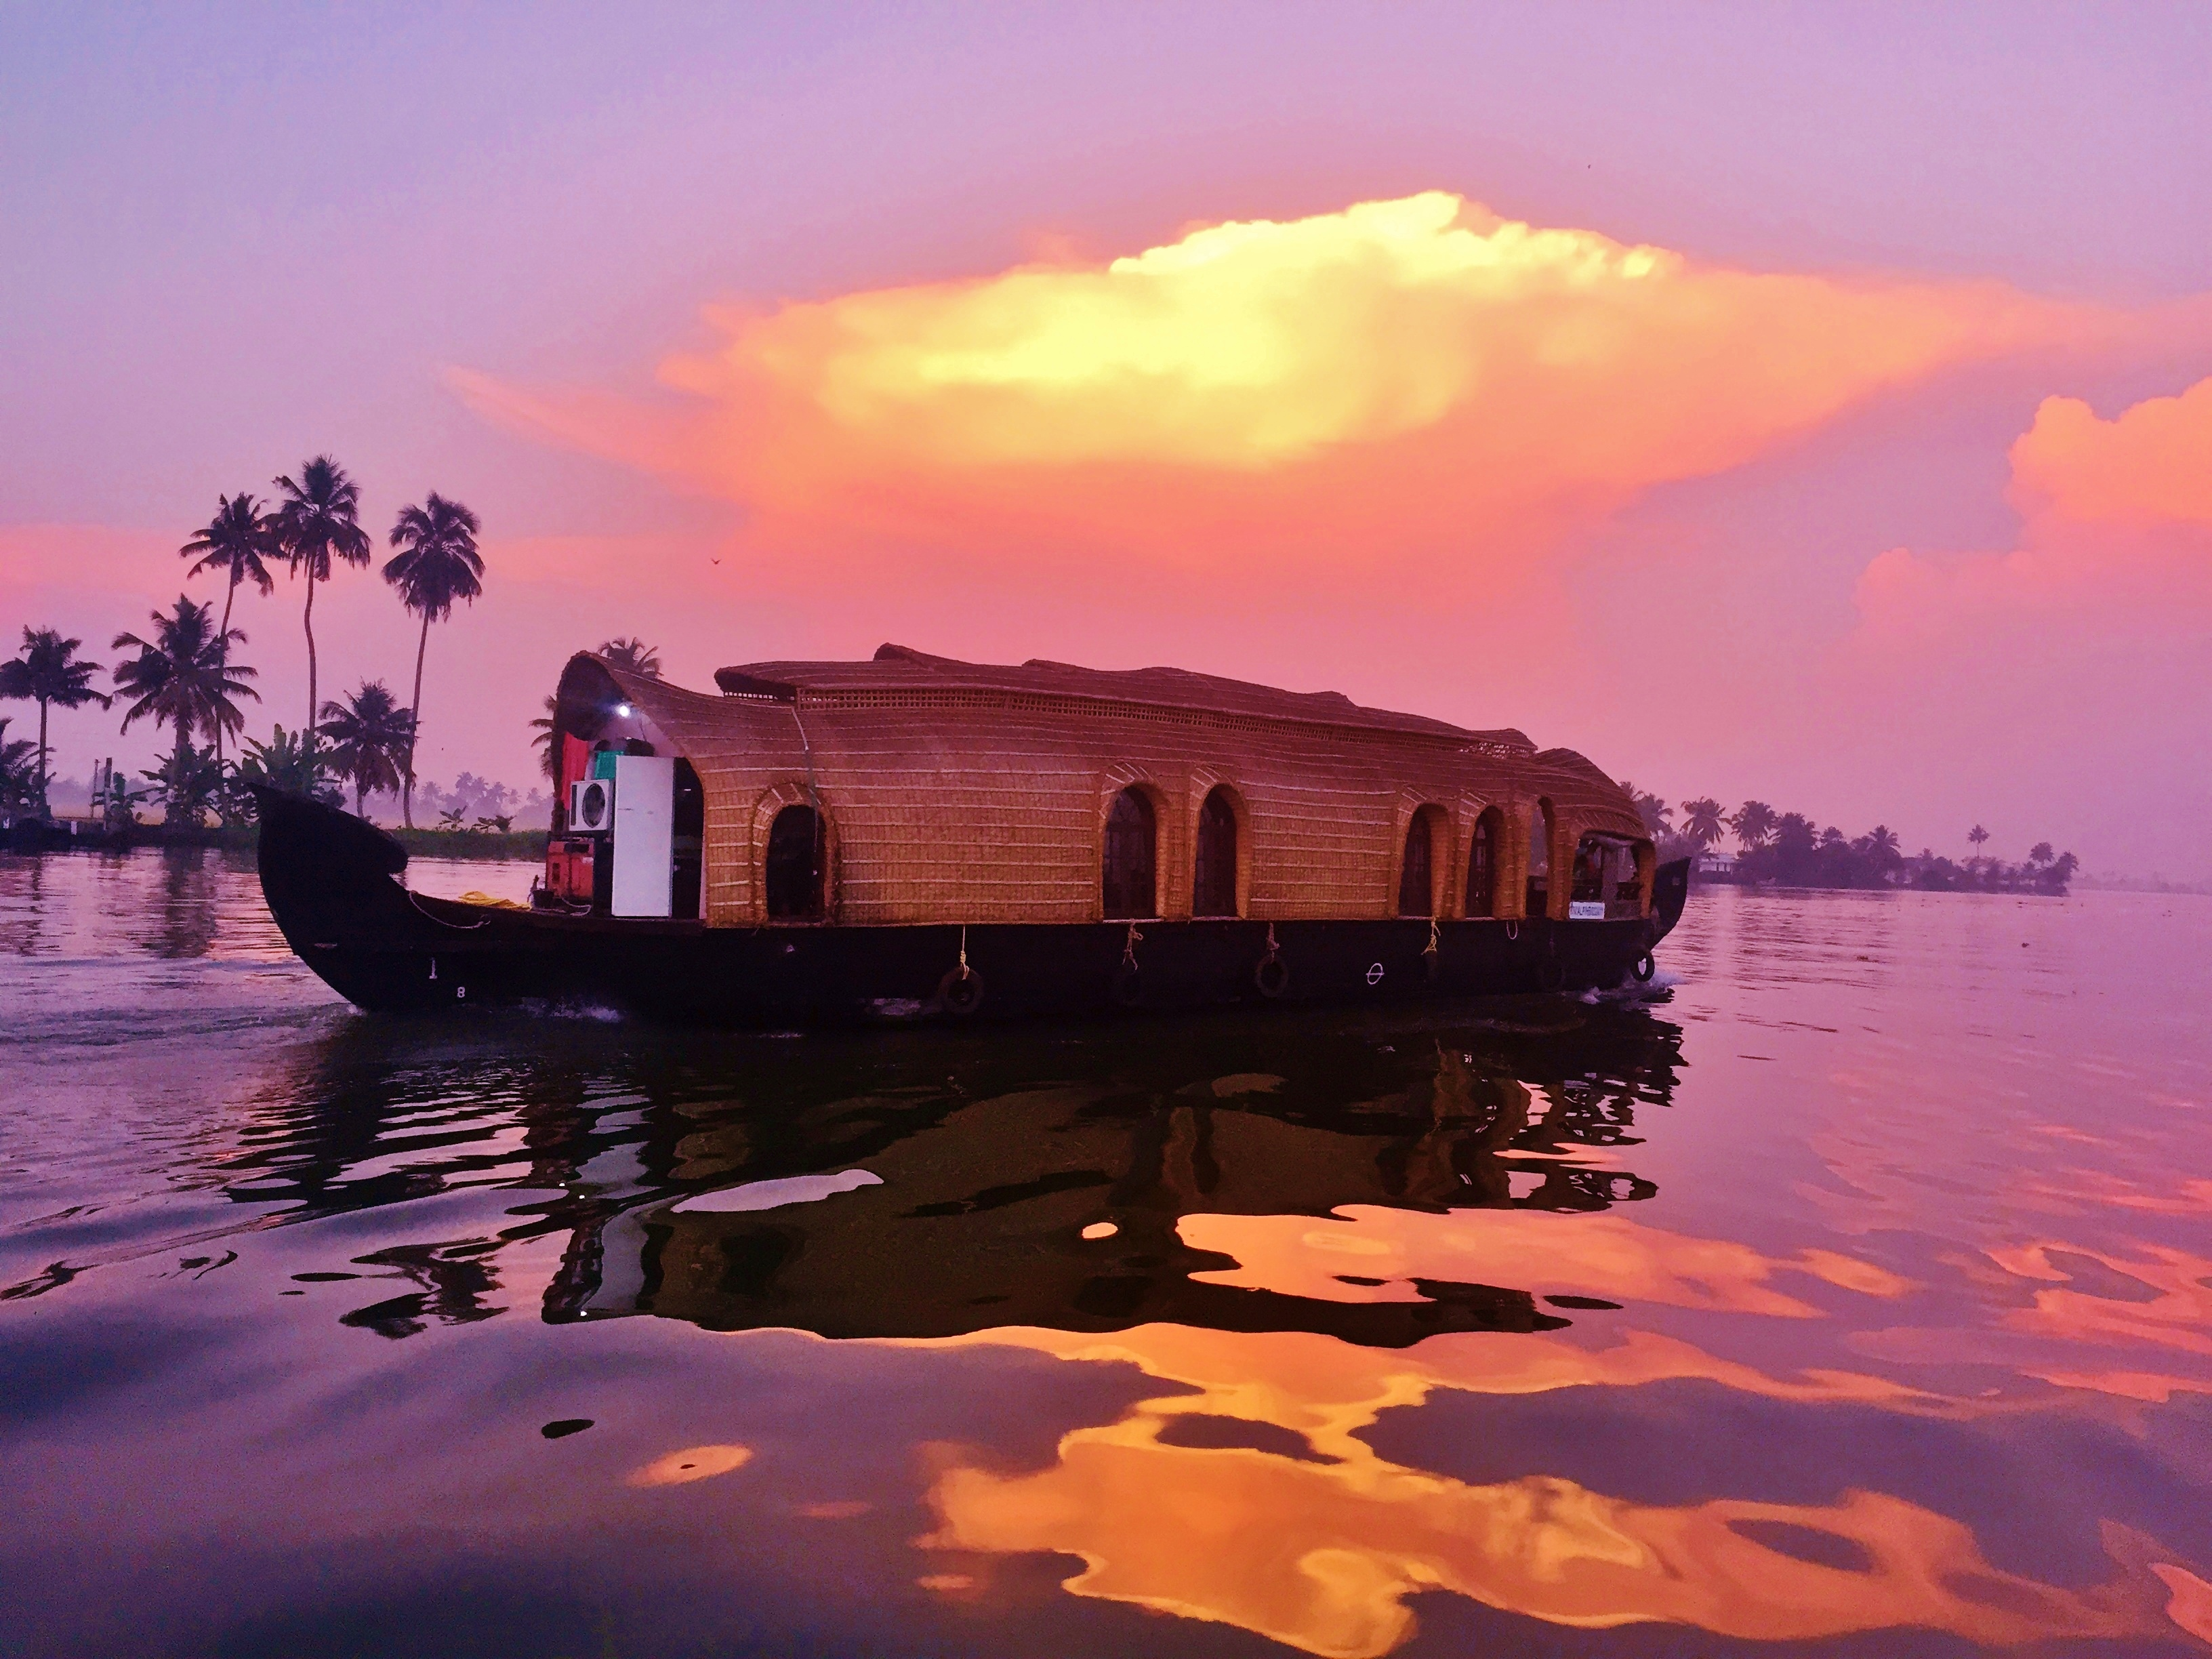 Sleeping On Houseboats In The Backwaters Of Kerala, India